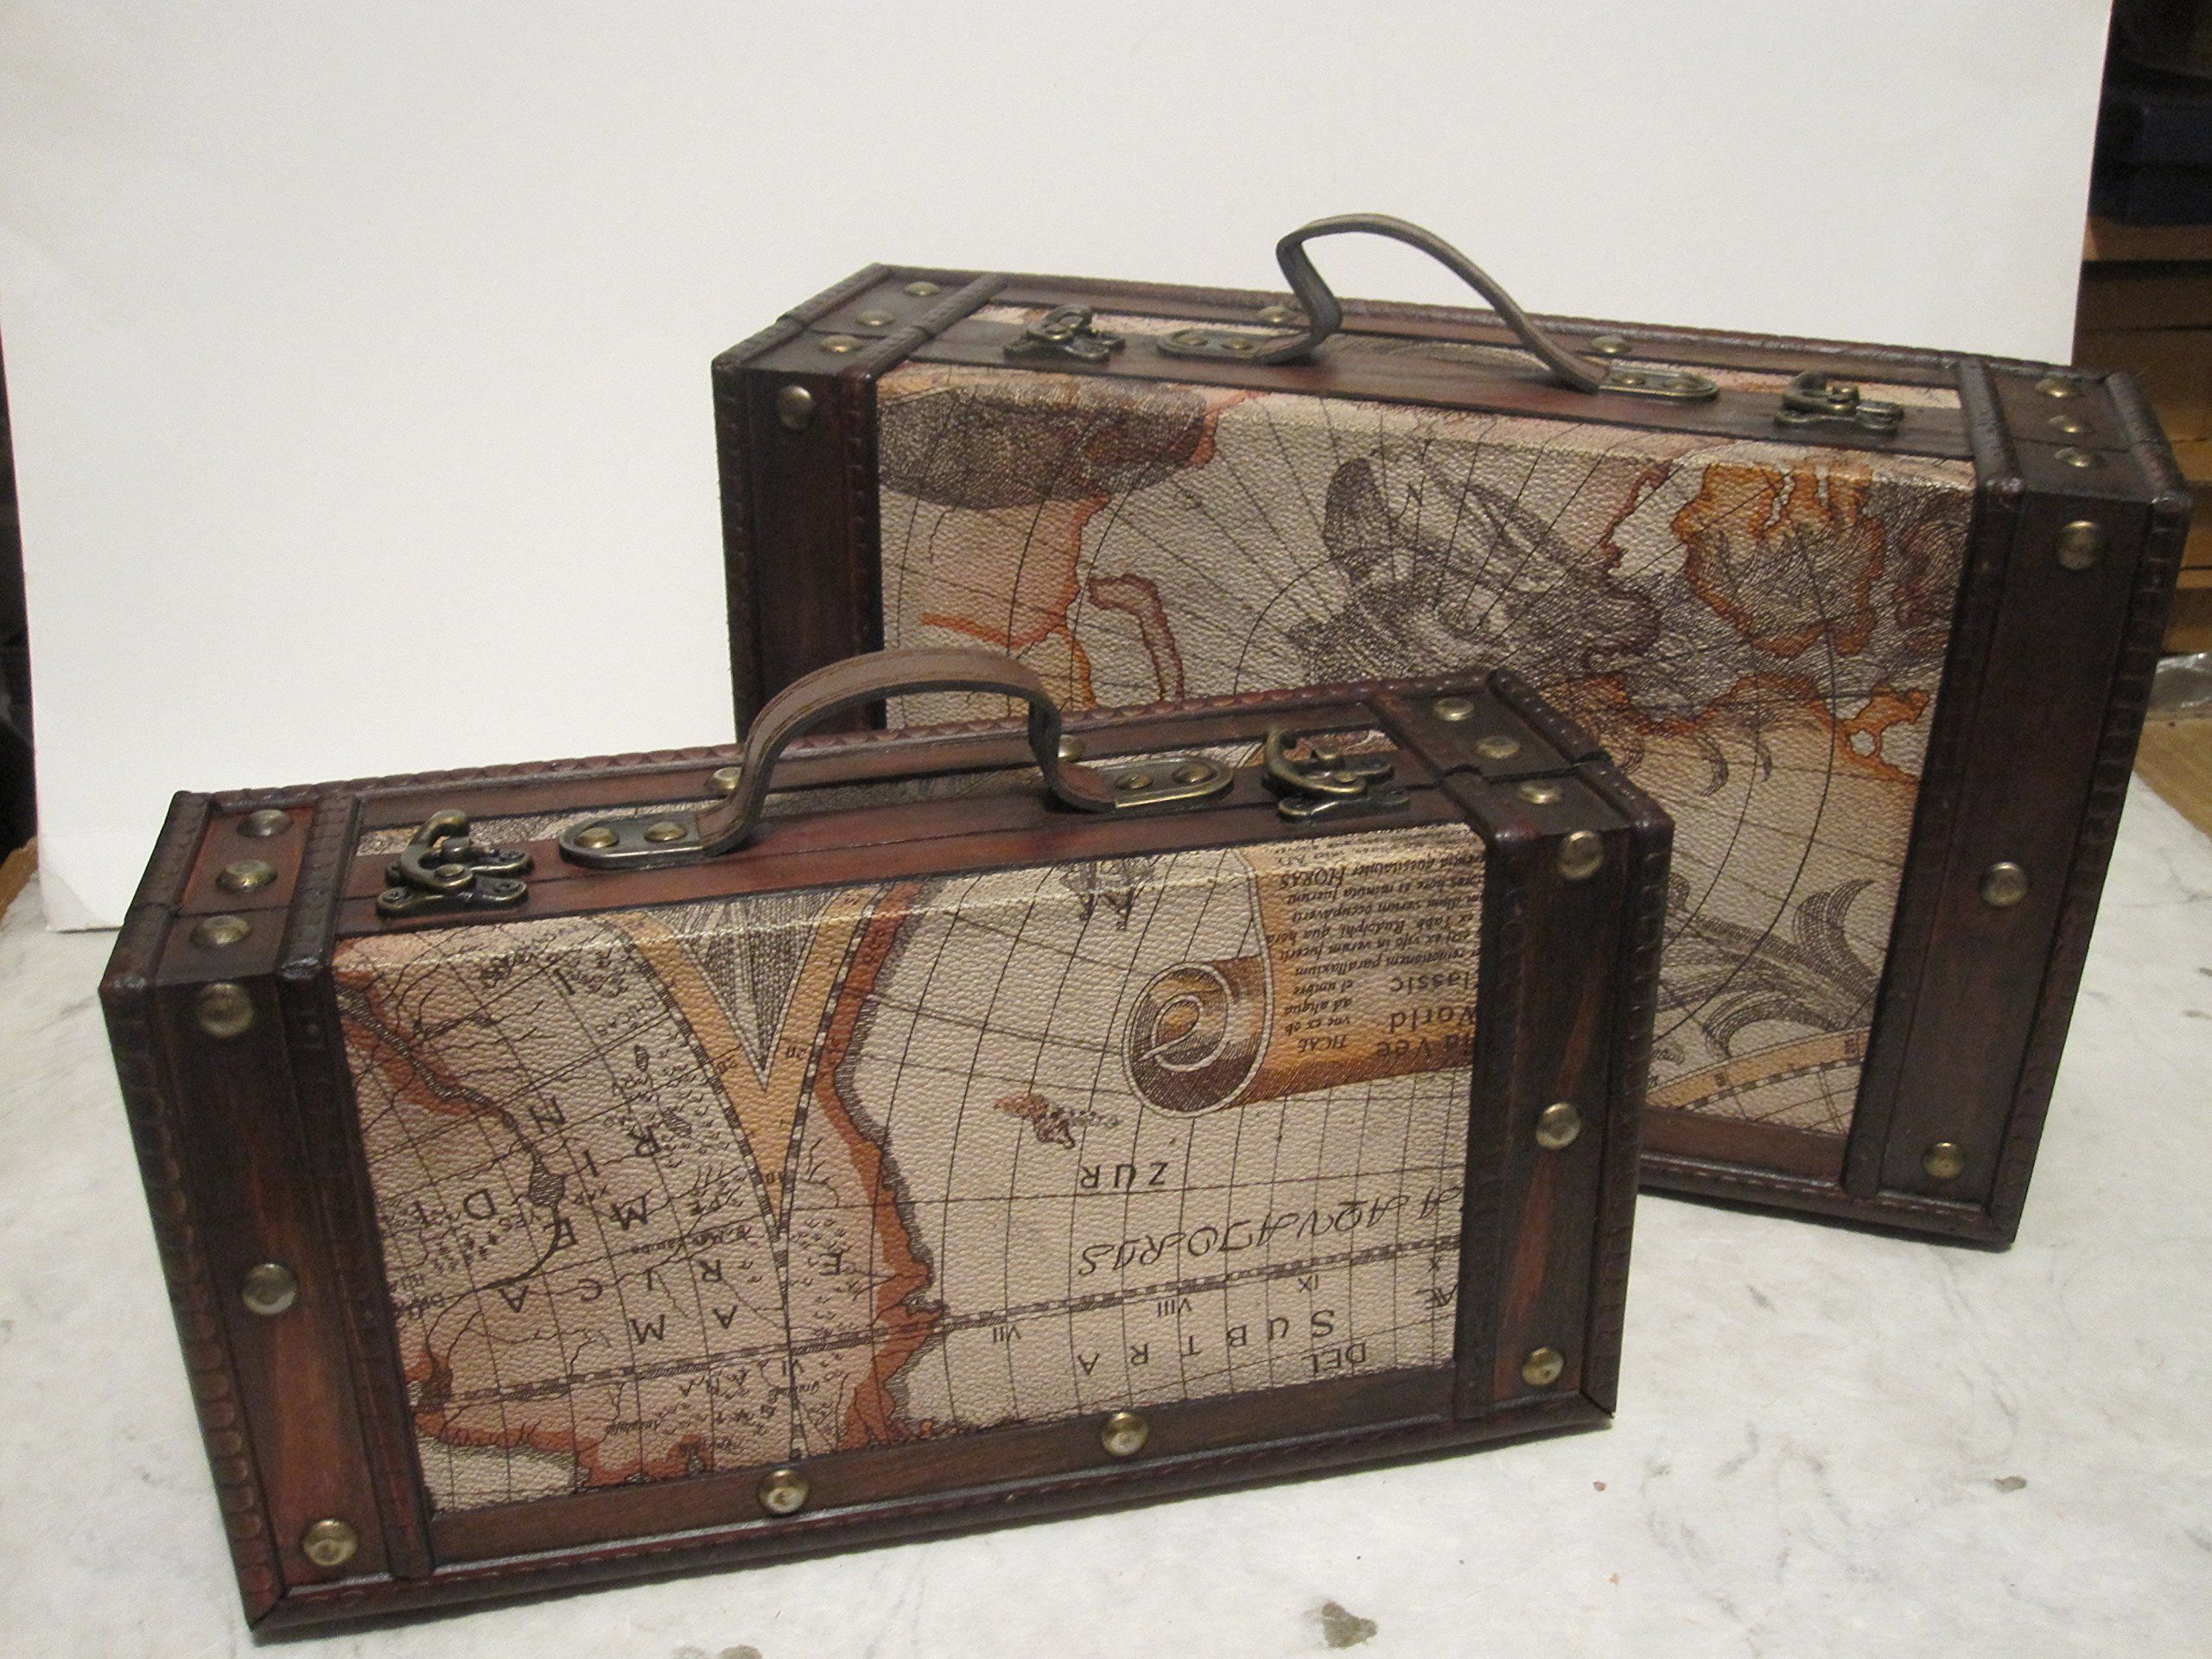 40 6 ship set of 2 old world map wooden suitcase trunk box 40 6 ship set of 2 old world map wooden suitcase trunk box gumiabroncs Image collections